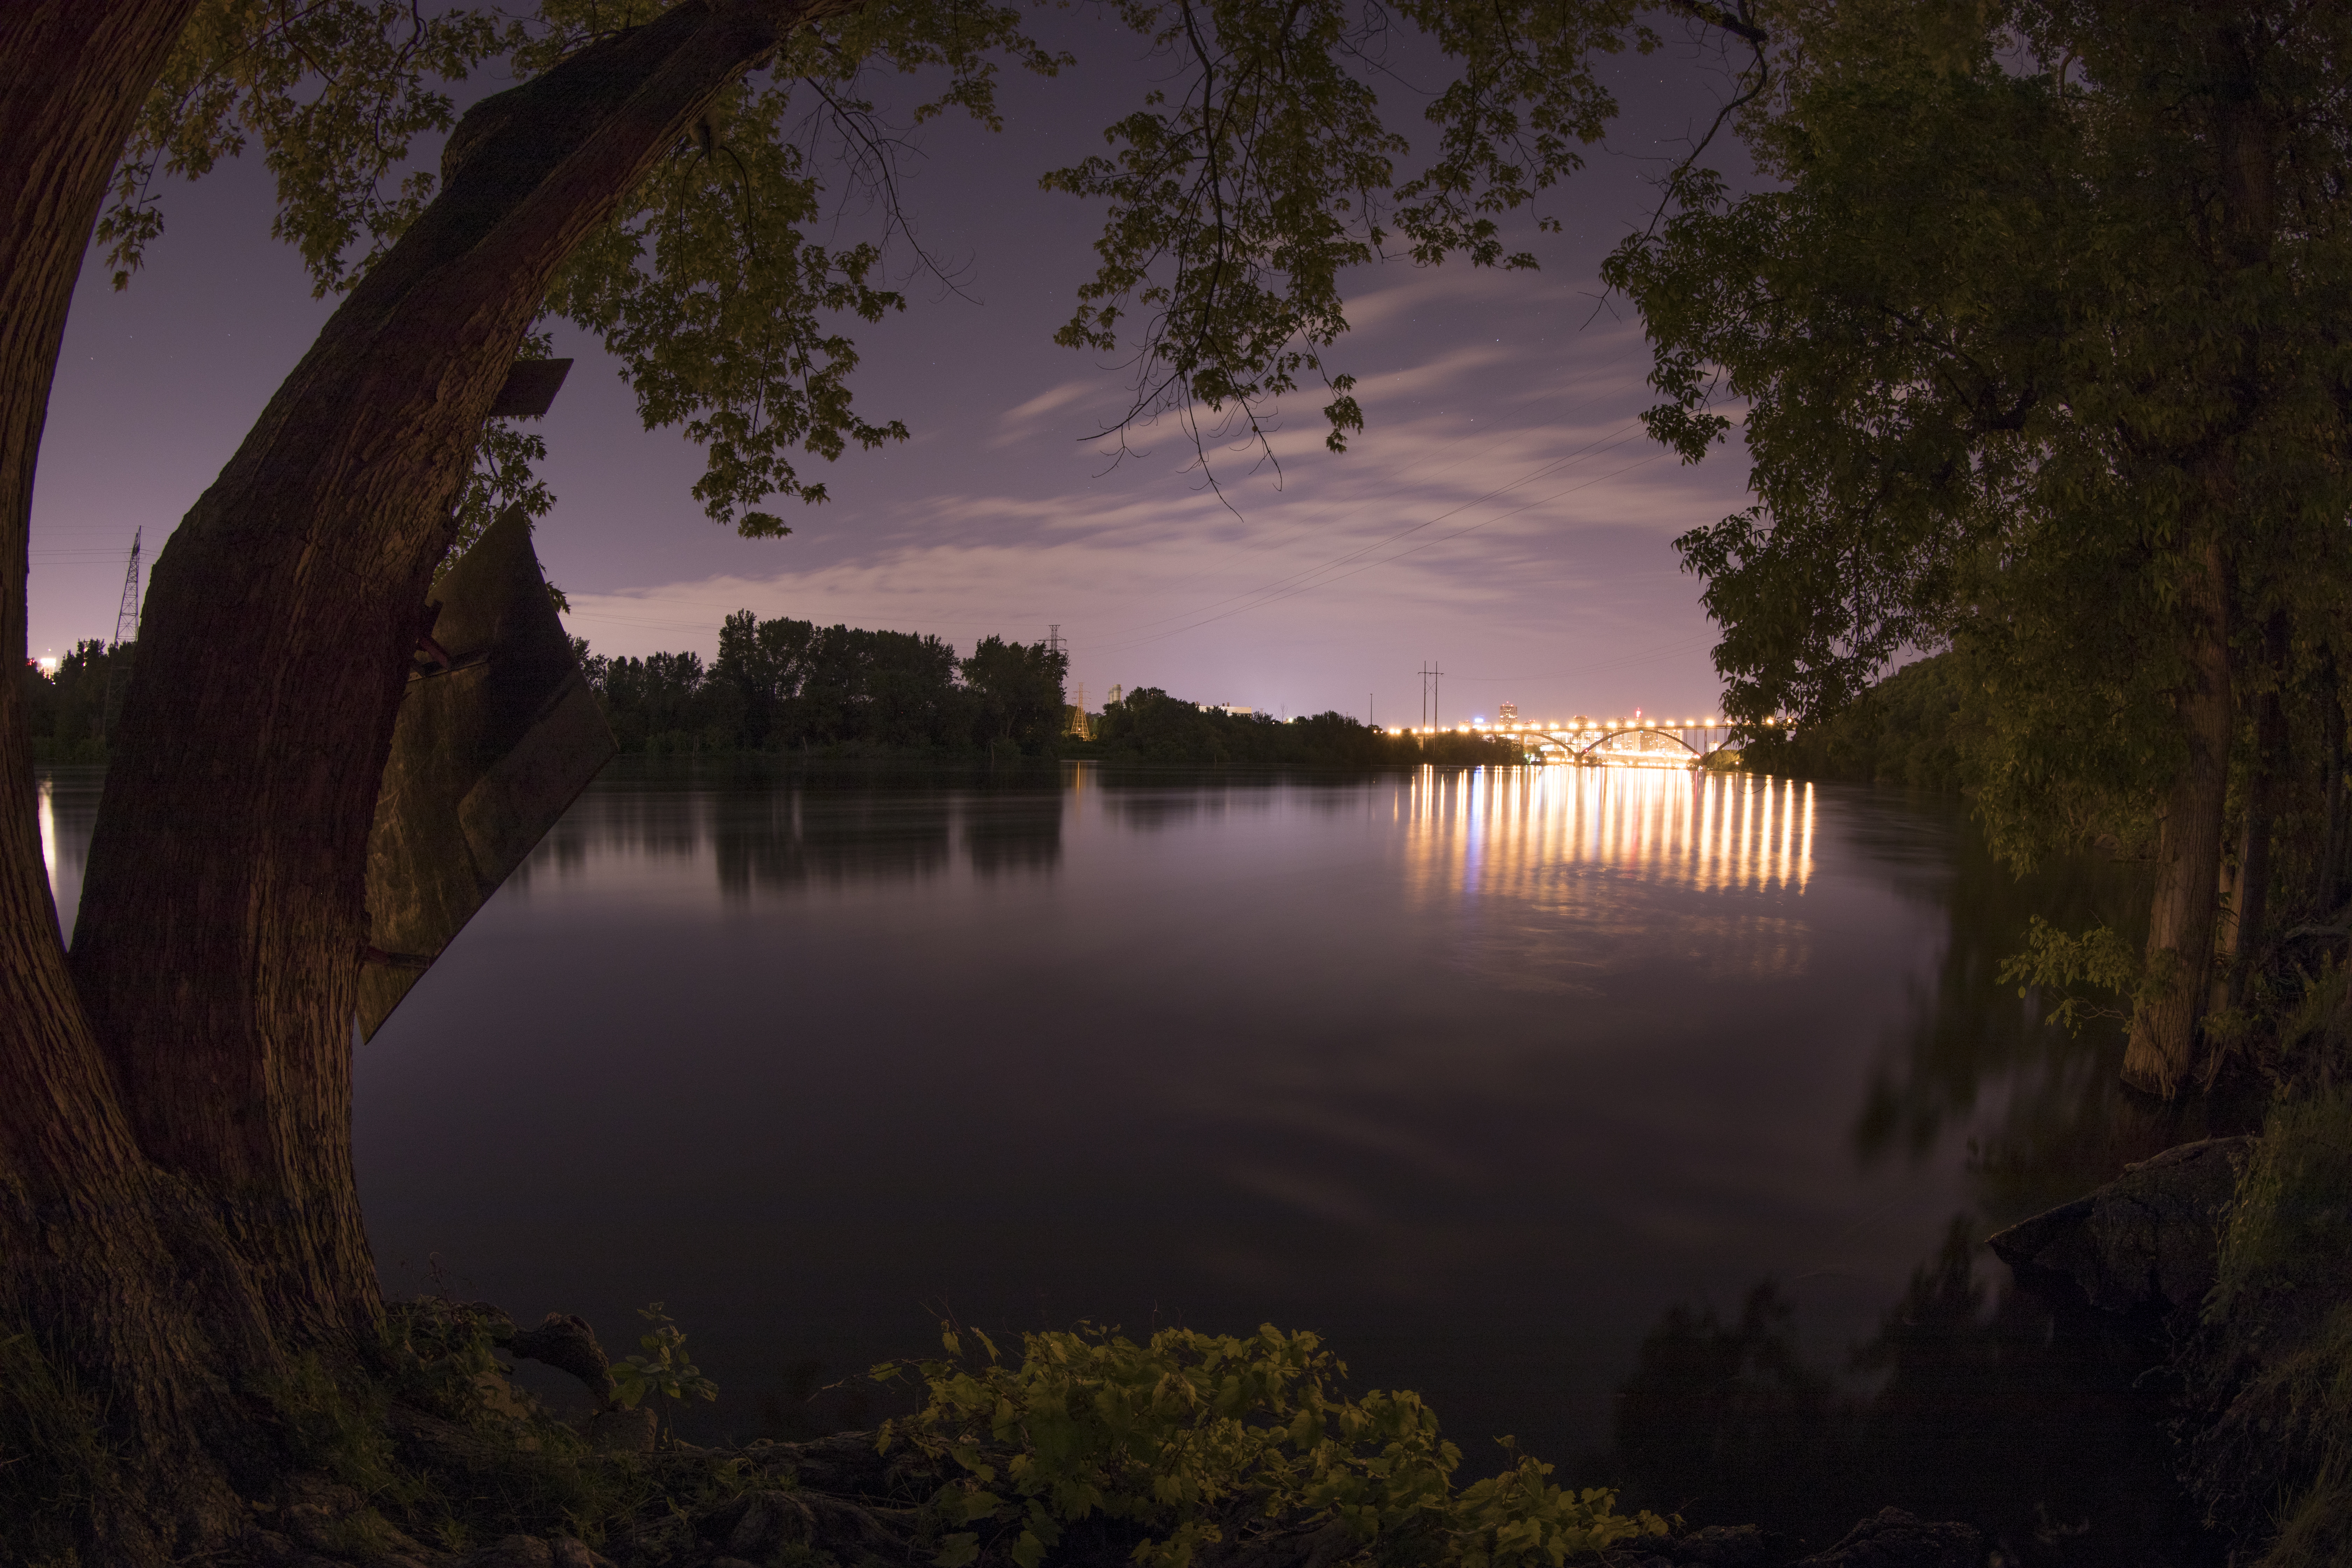 Lilydale to St. Paul. A fisheye shot of the Mississippi river at night, with Downtown St. Paul visible in the distance. Photographer Chris Juhn.